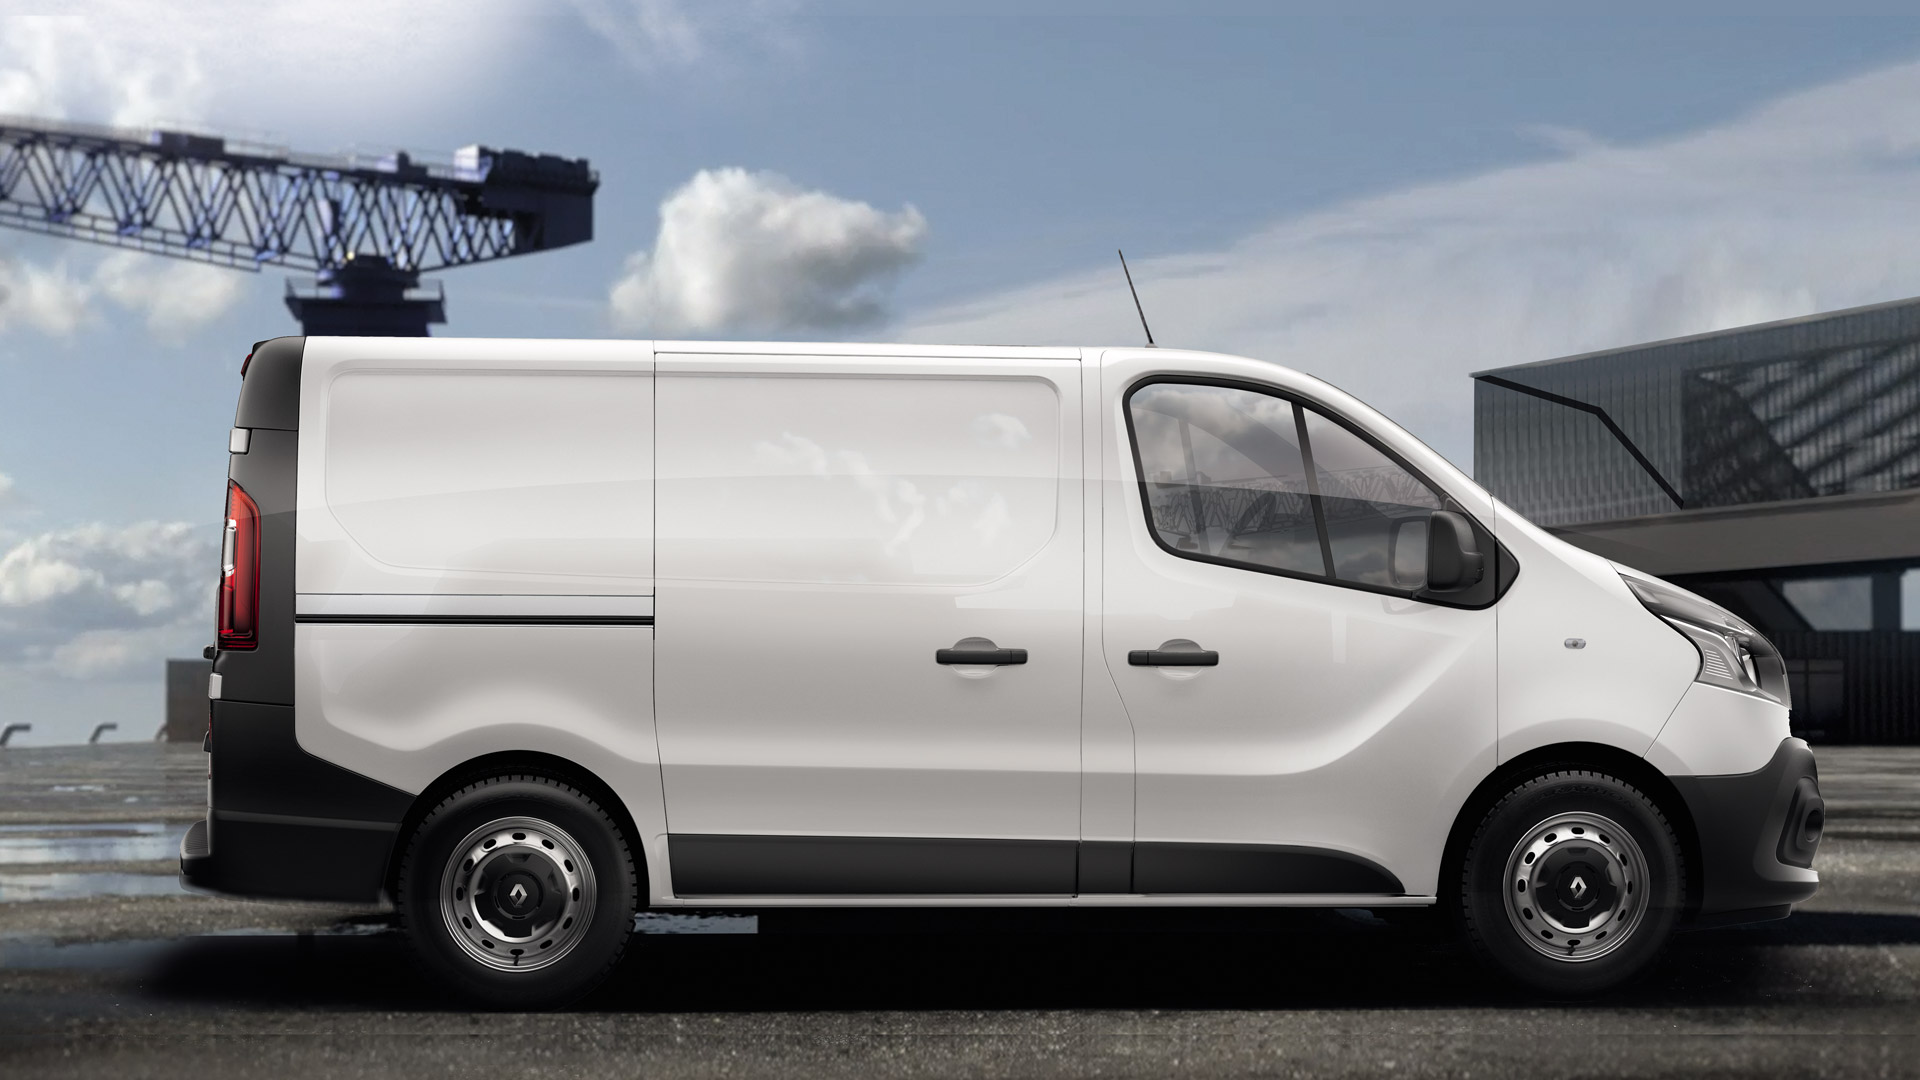 2014 renault trafic 2 pictures information and specs auto. Black Bedroom Furniture Sets. Home Design Ideas